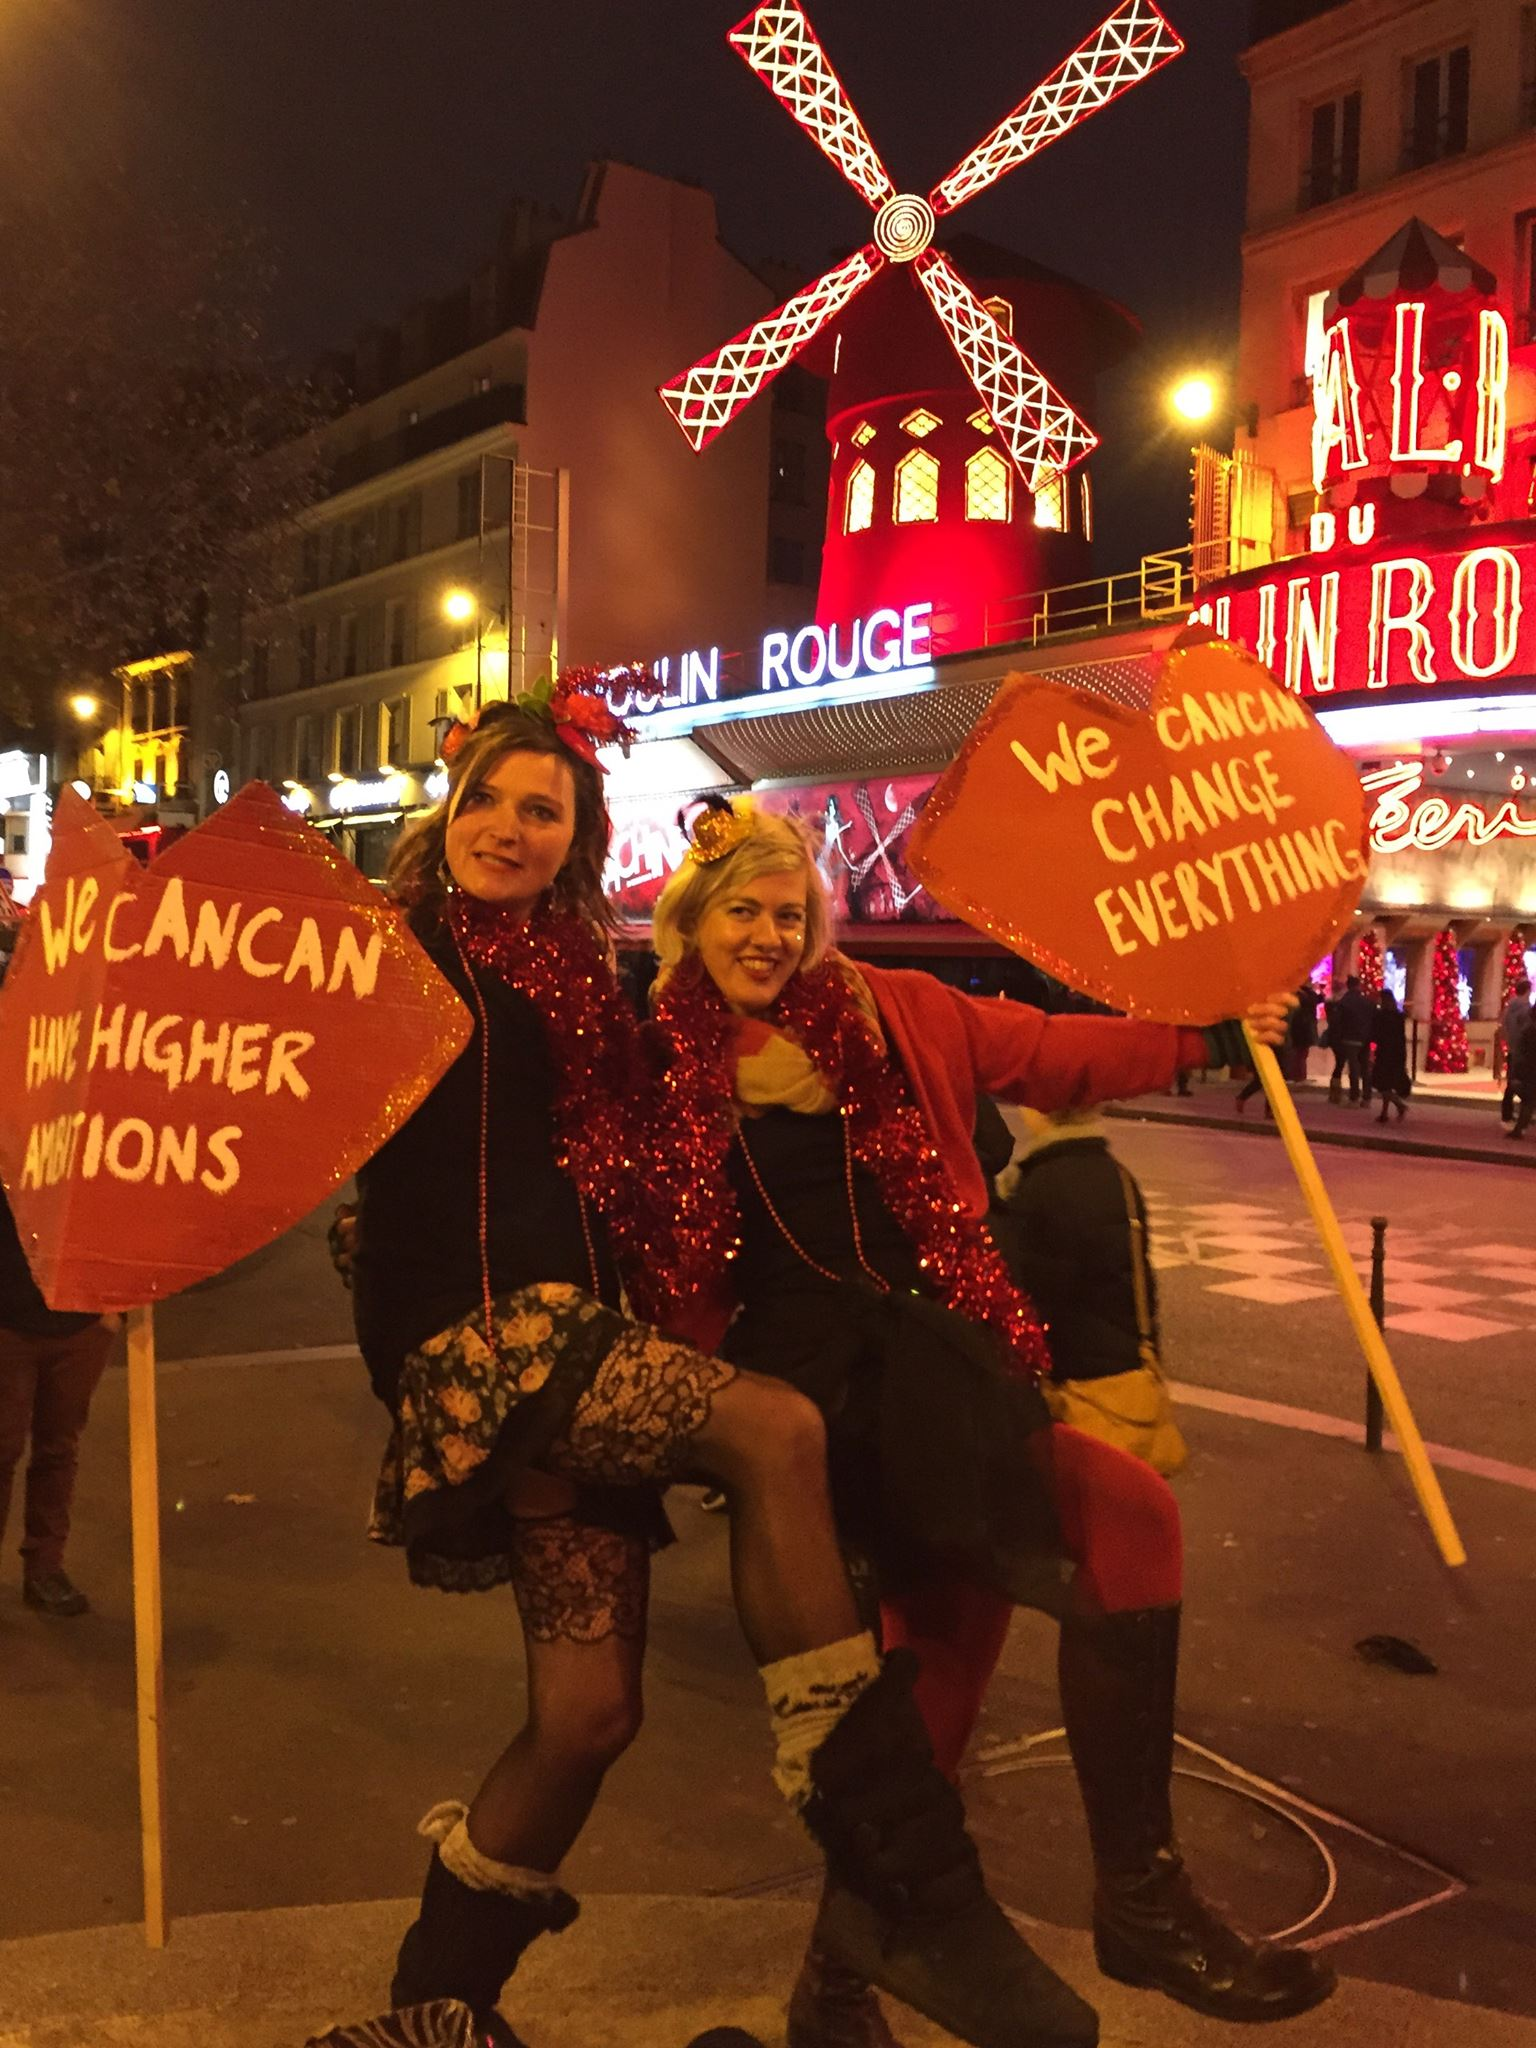 Alex Kelly at the We CanCan action at Moulin Rouge, Paris,during COP21 climate conference, Dec 2015